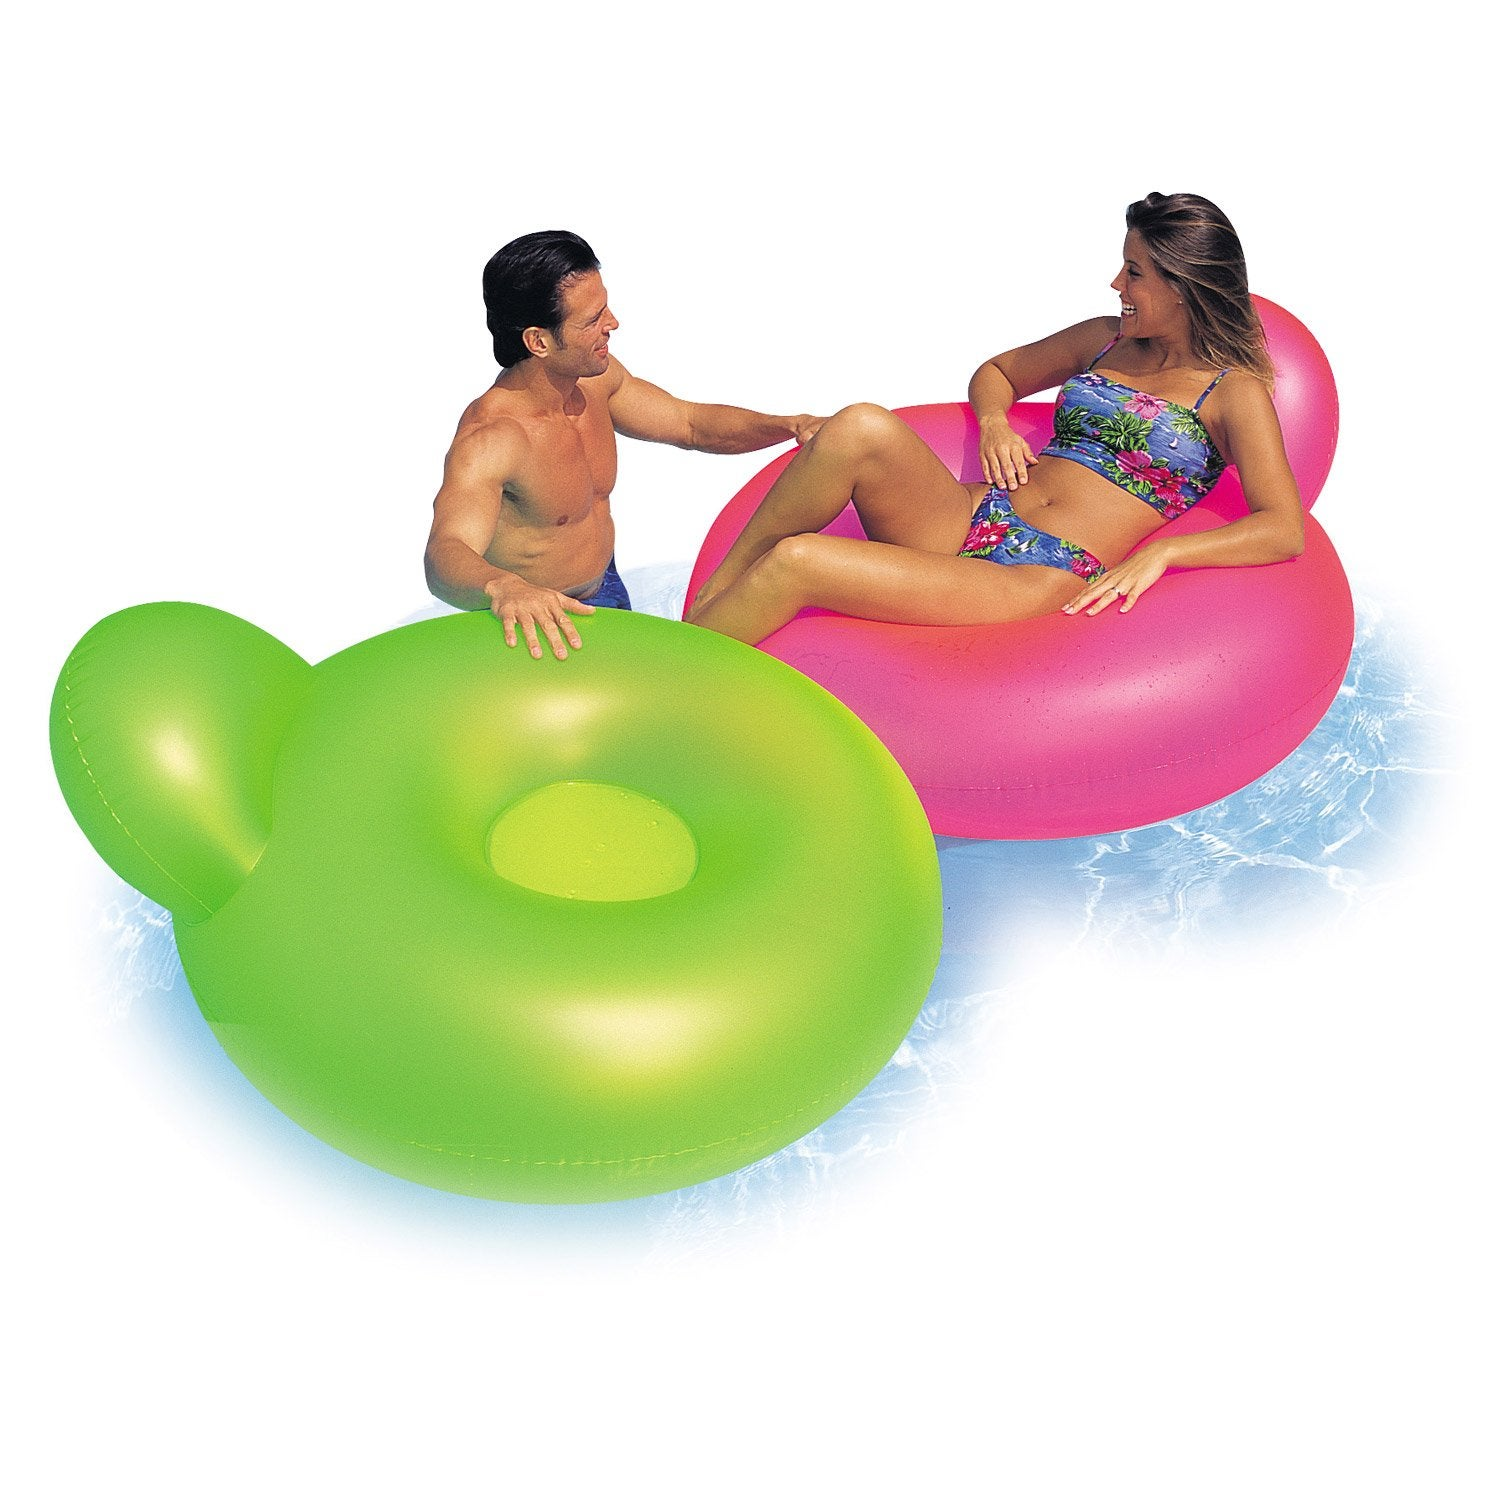 fauteuil de piscine gonflable intex leroy merlin